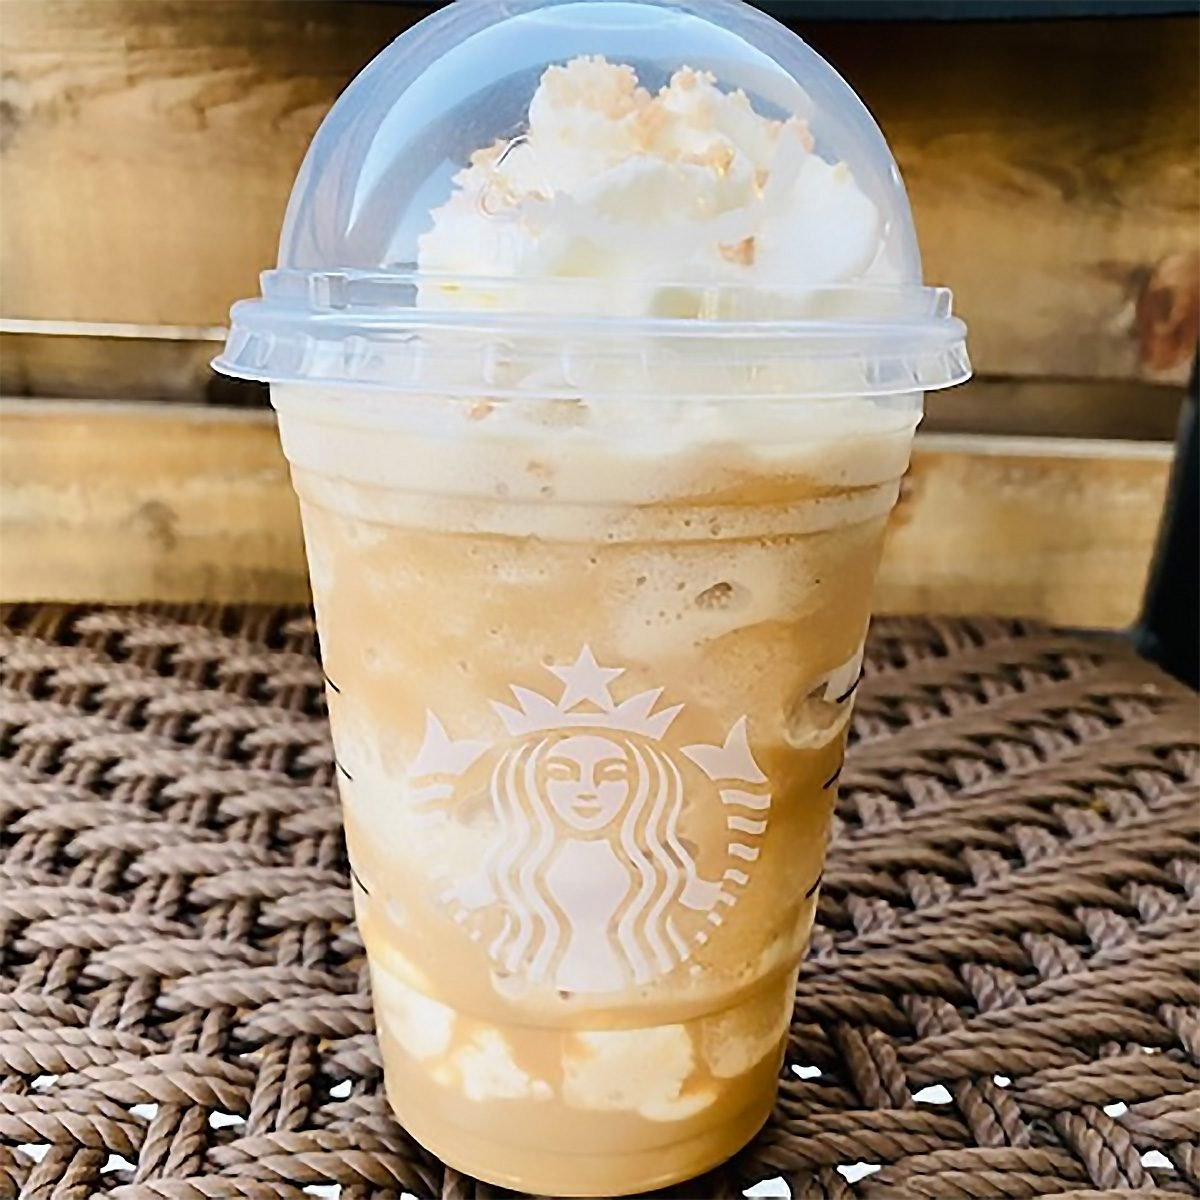 22 starbucks secret menu drinks you won't want to miss